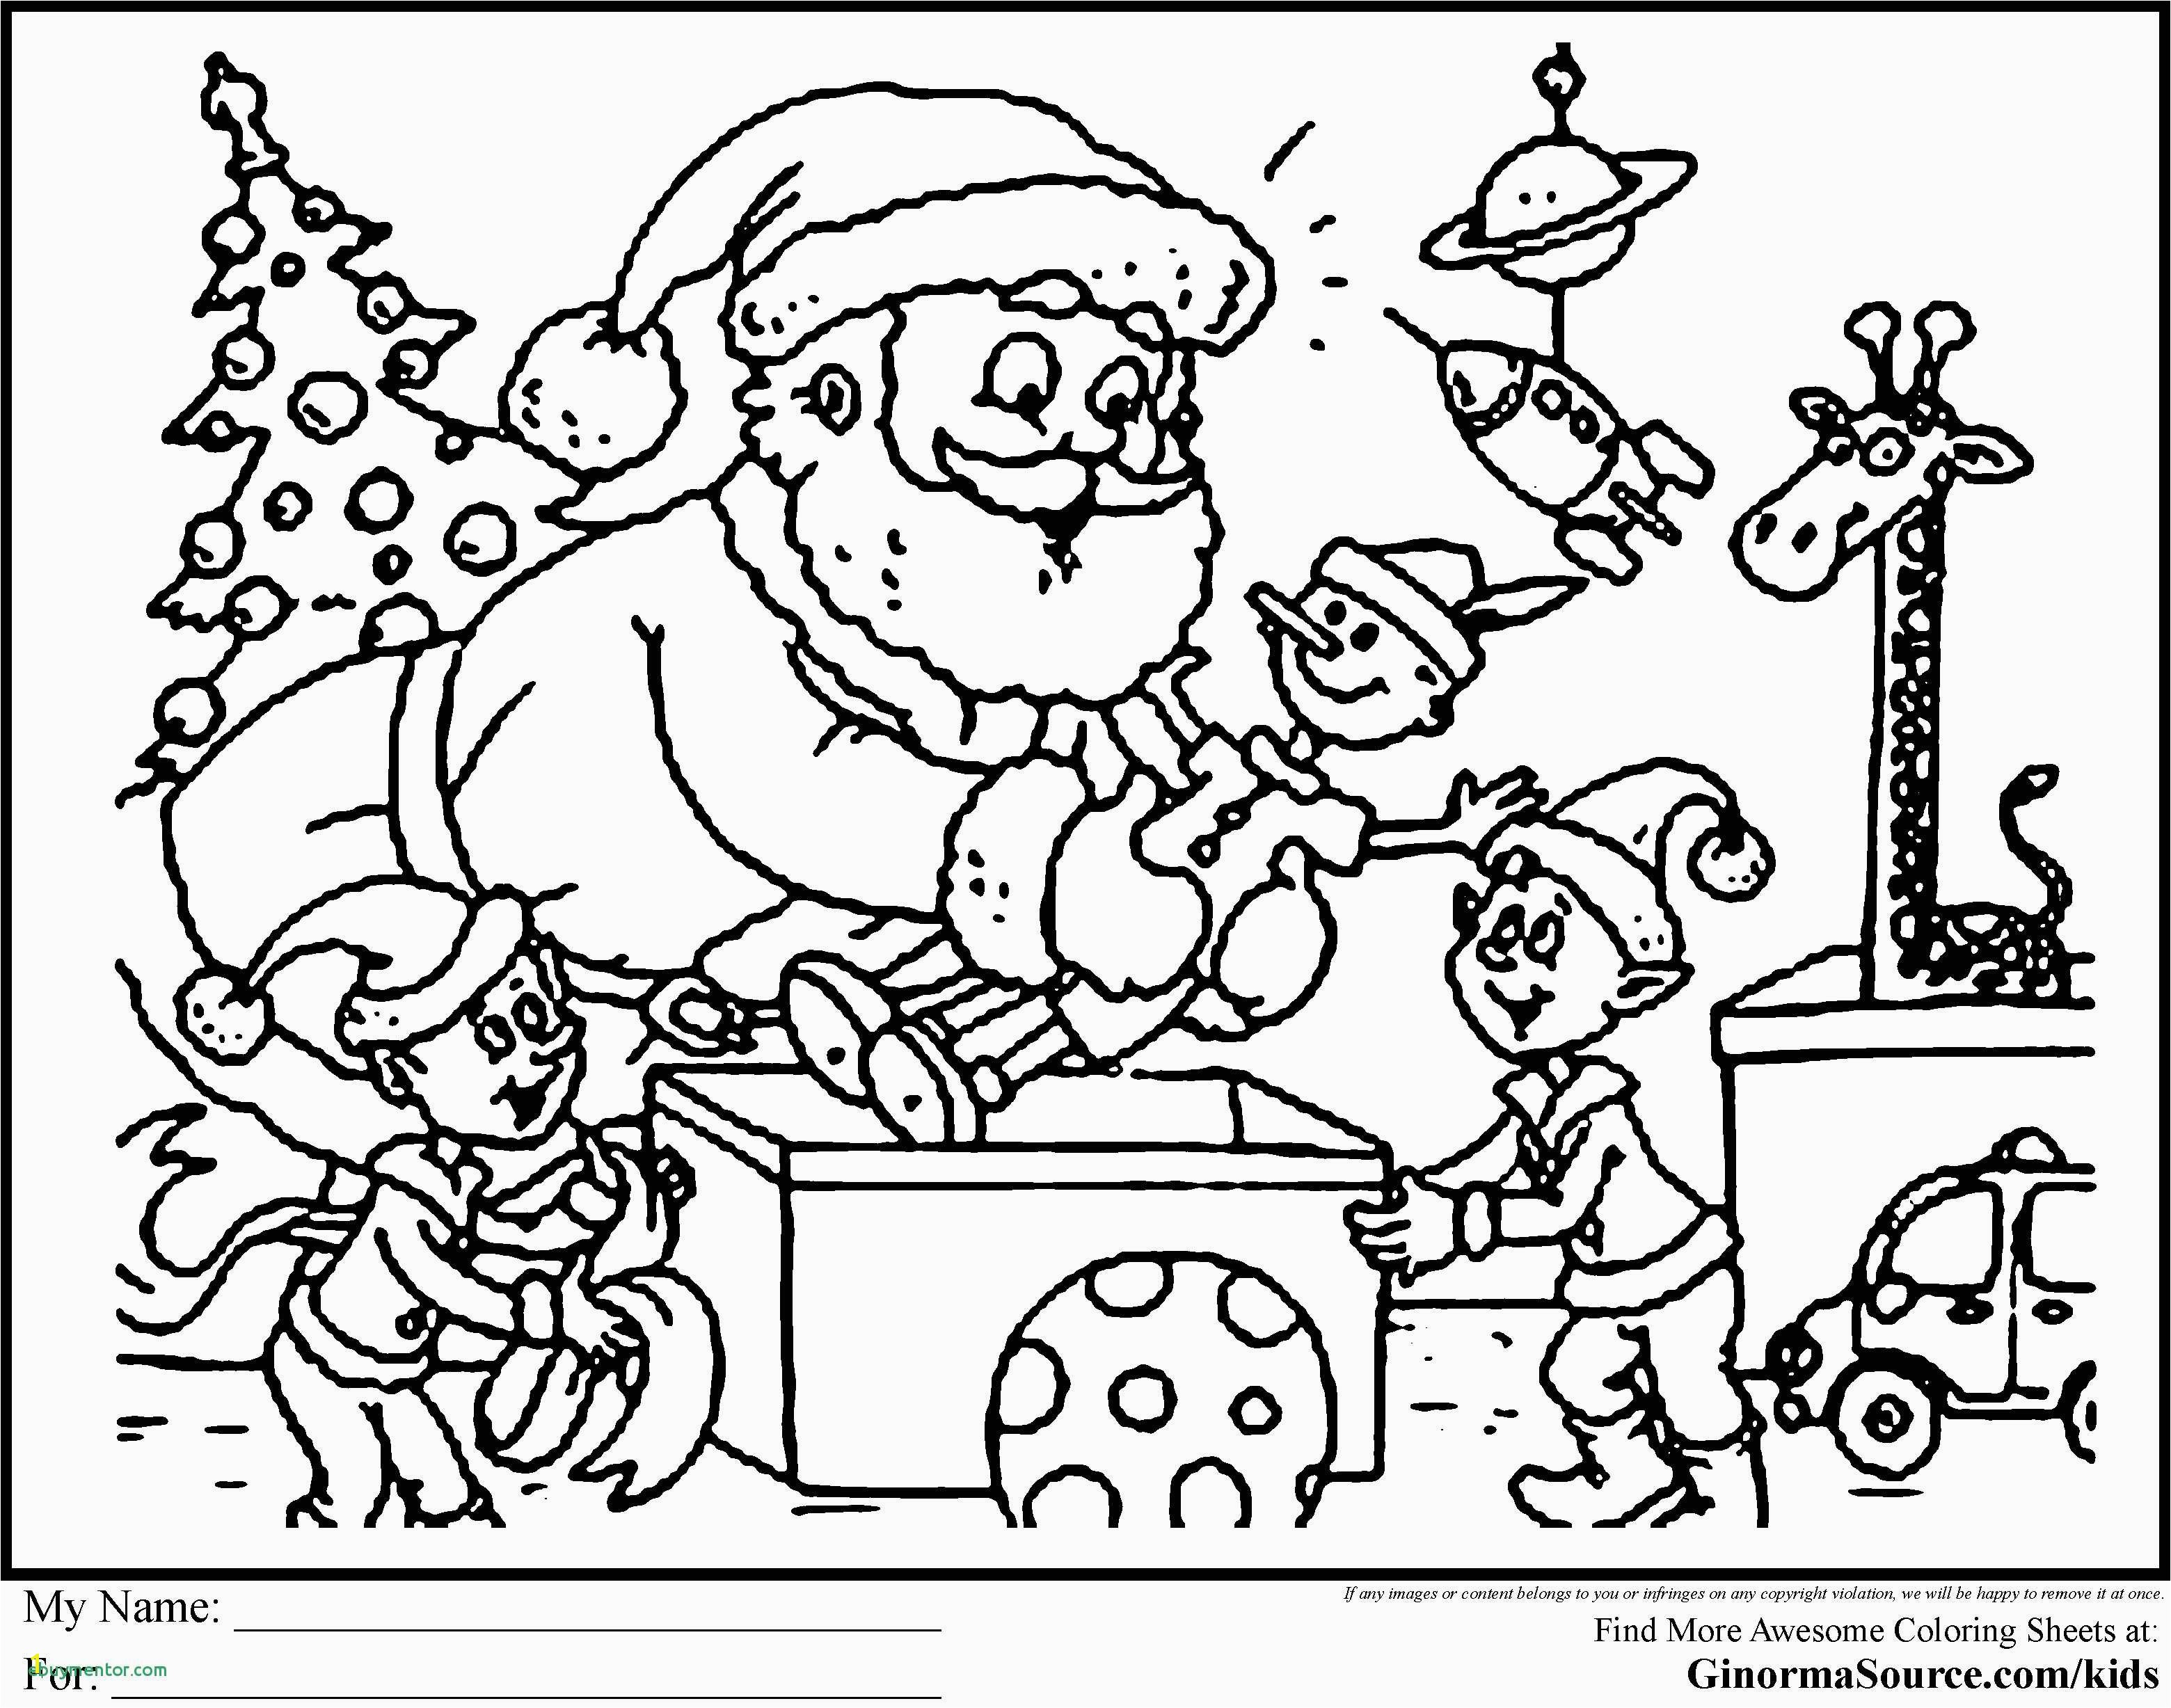 Free Nativity Coloring Pages For Kids Christmas Coloring Pages Printable Luxury Cool Od Dog Coloring Pages